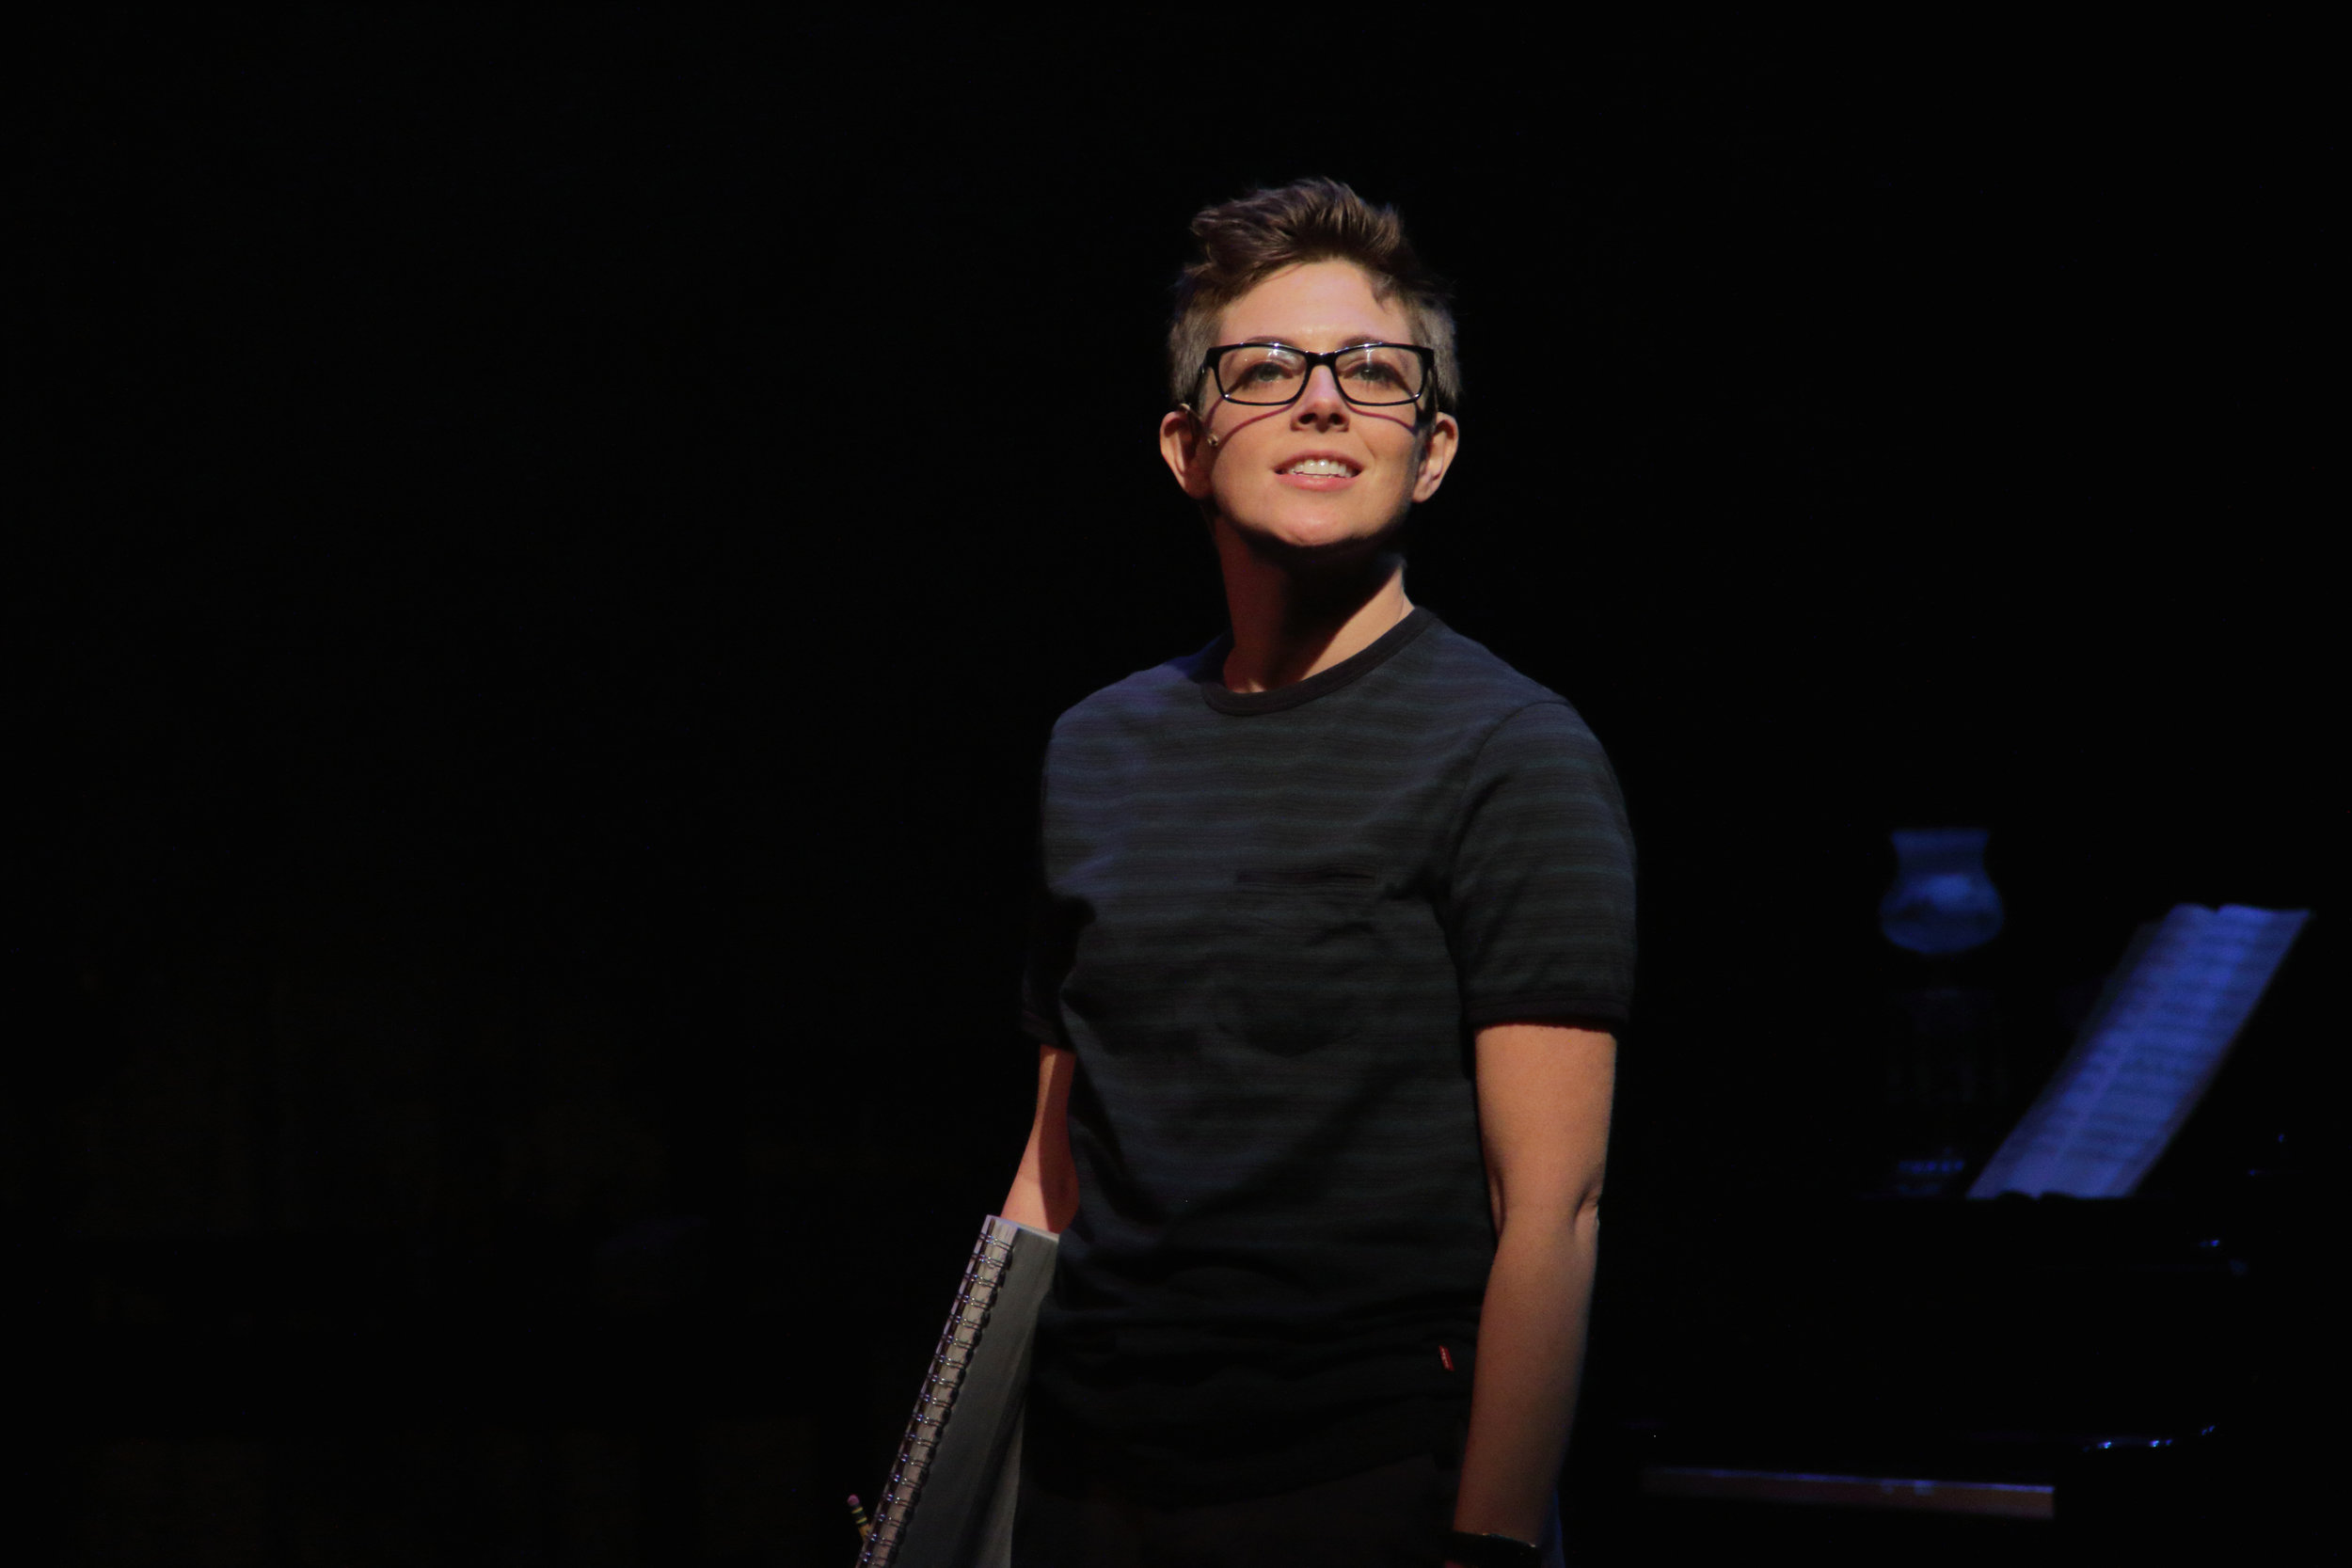 FunHome closeups 040_edit.jpg